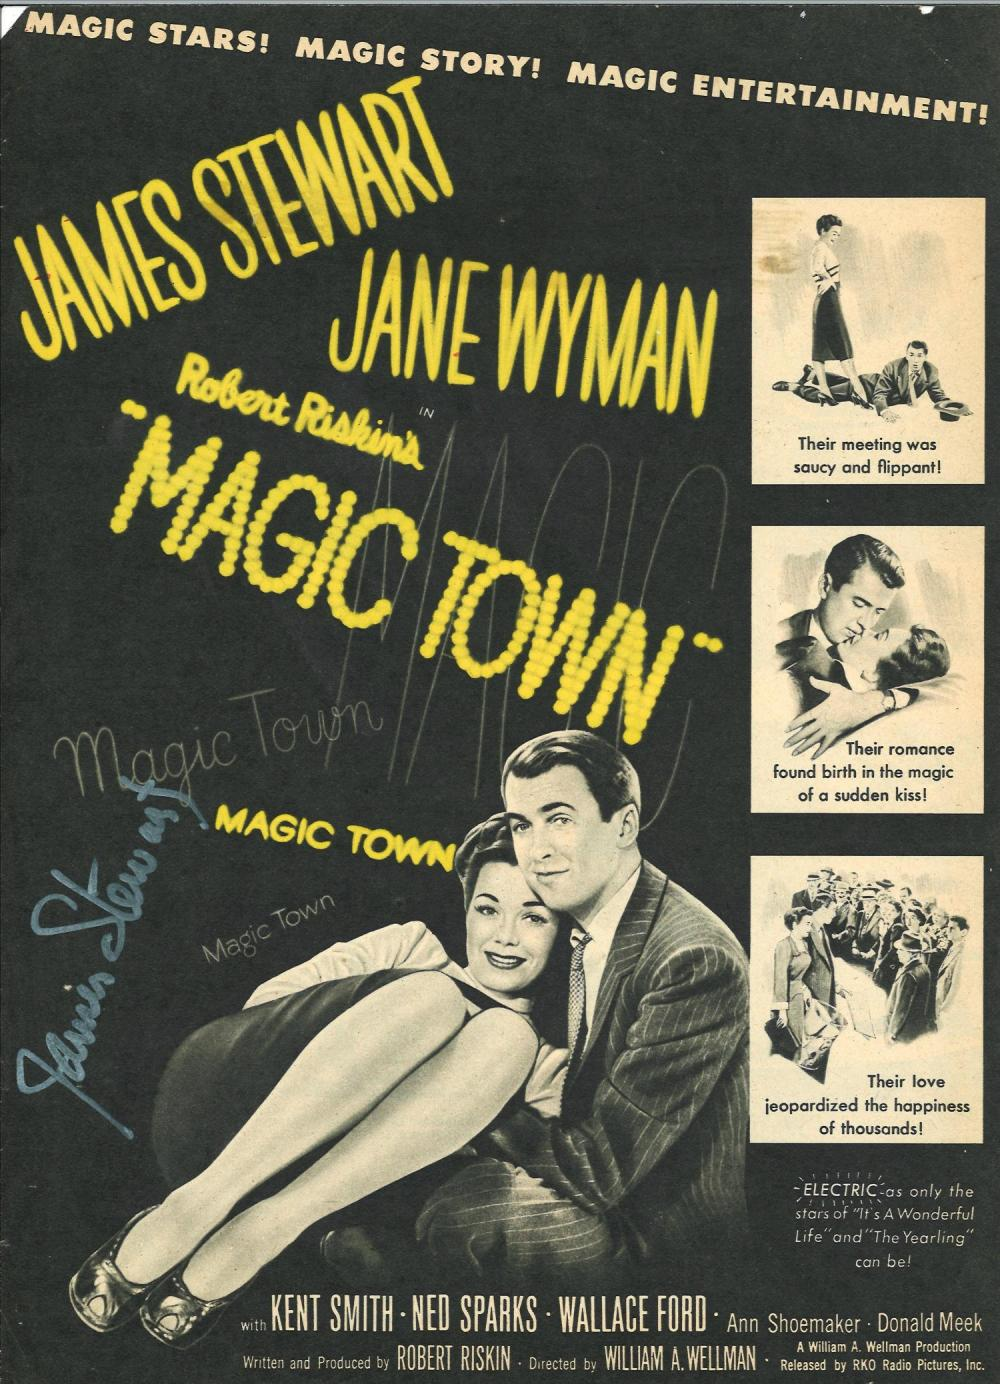 James Stewart signed front page of movie booklet for Magic T